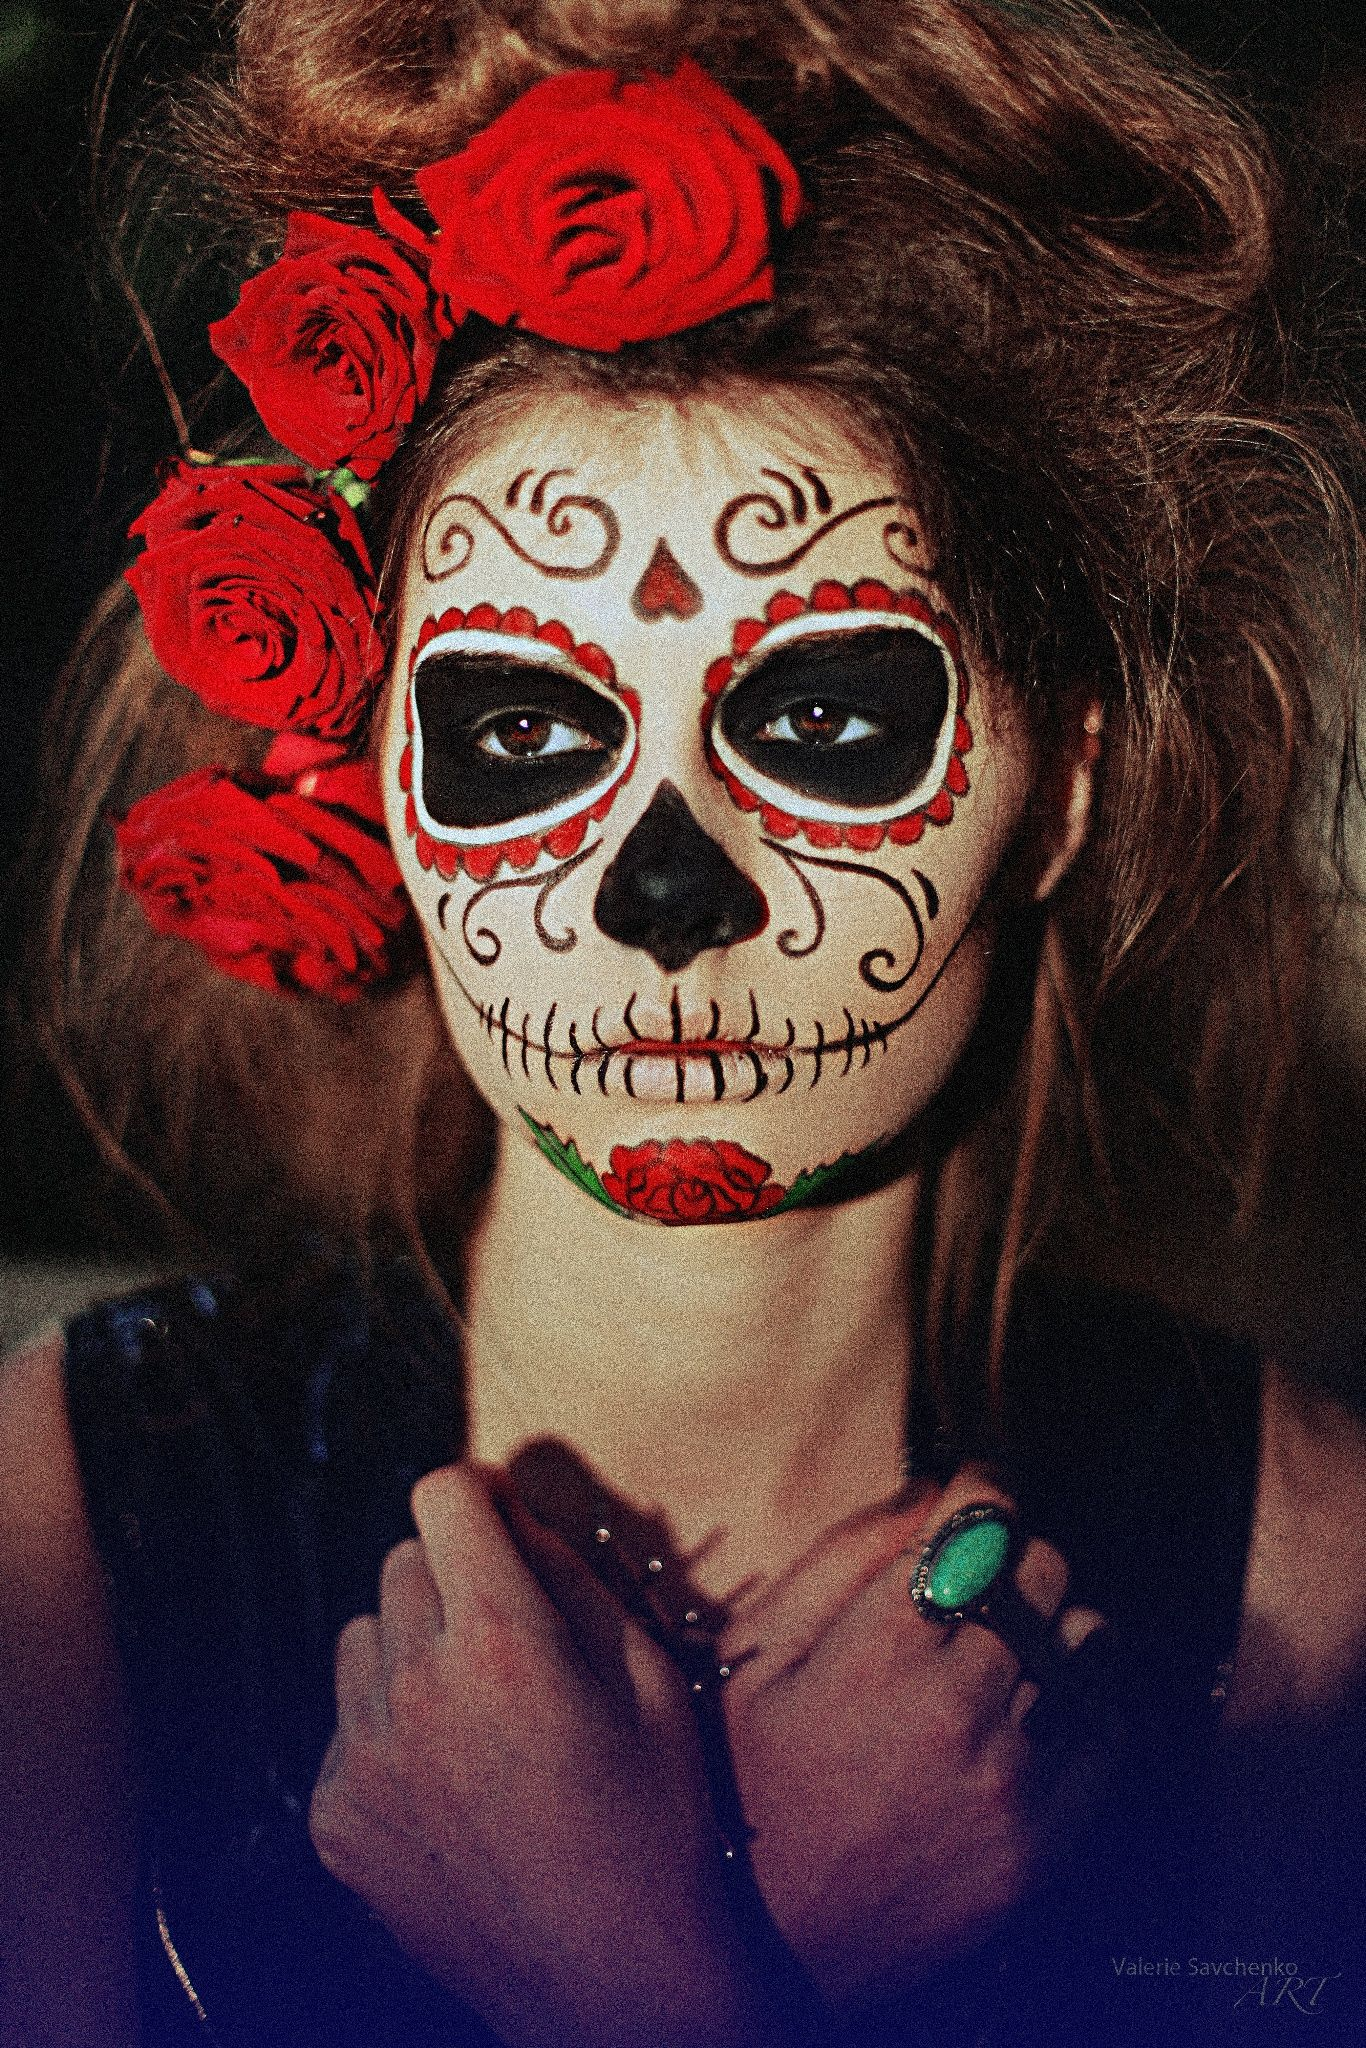 Untitled by valerie savchenko on 500px hair beuty pinterest tutorials for easy mexican sugar skull makeup for day of makeup ideas sugar skull makeup tutorial sugar skull makeup tutorial baditri Image collections